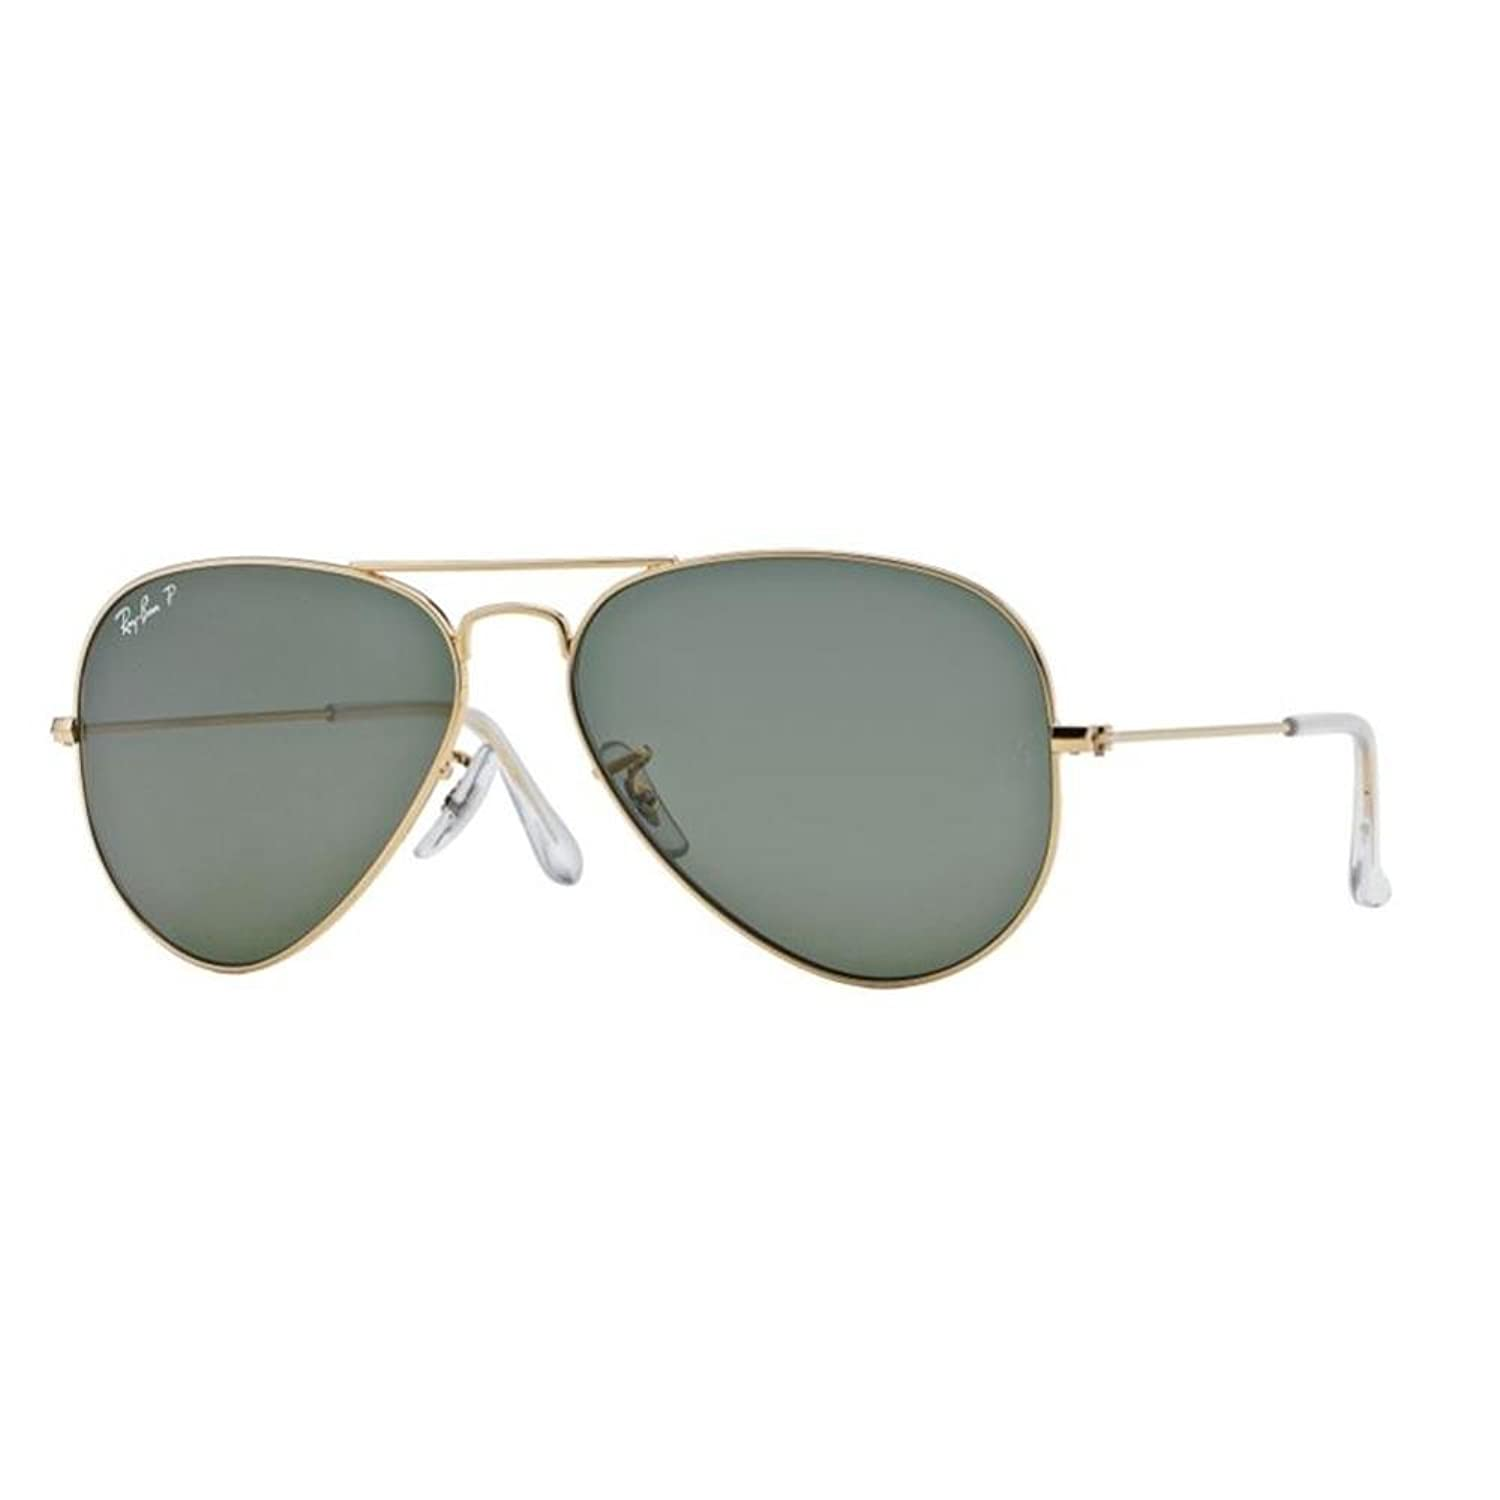 d2b60e885 Ray Ban Sunglasses: Buy Ray Ban Sunglasses For Men & Women online at ...